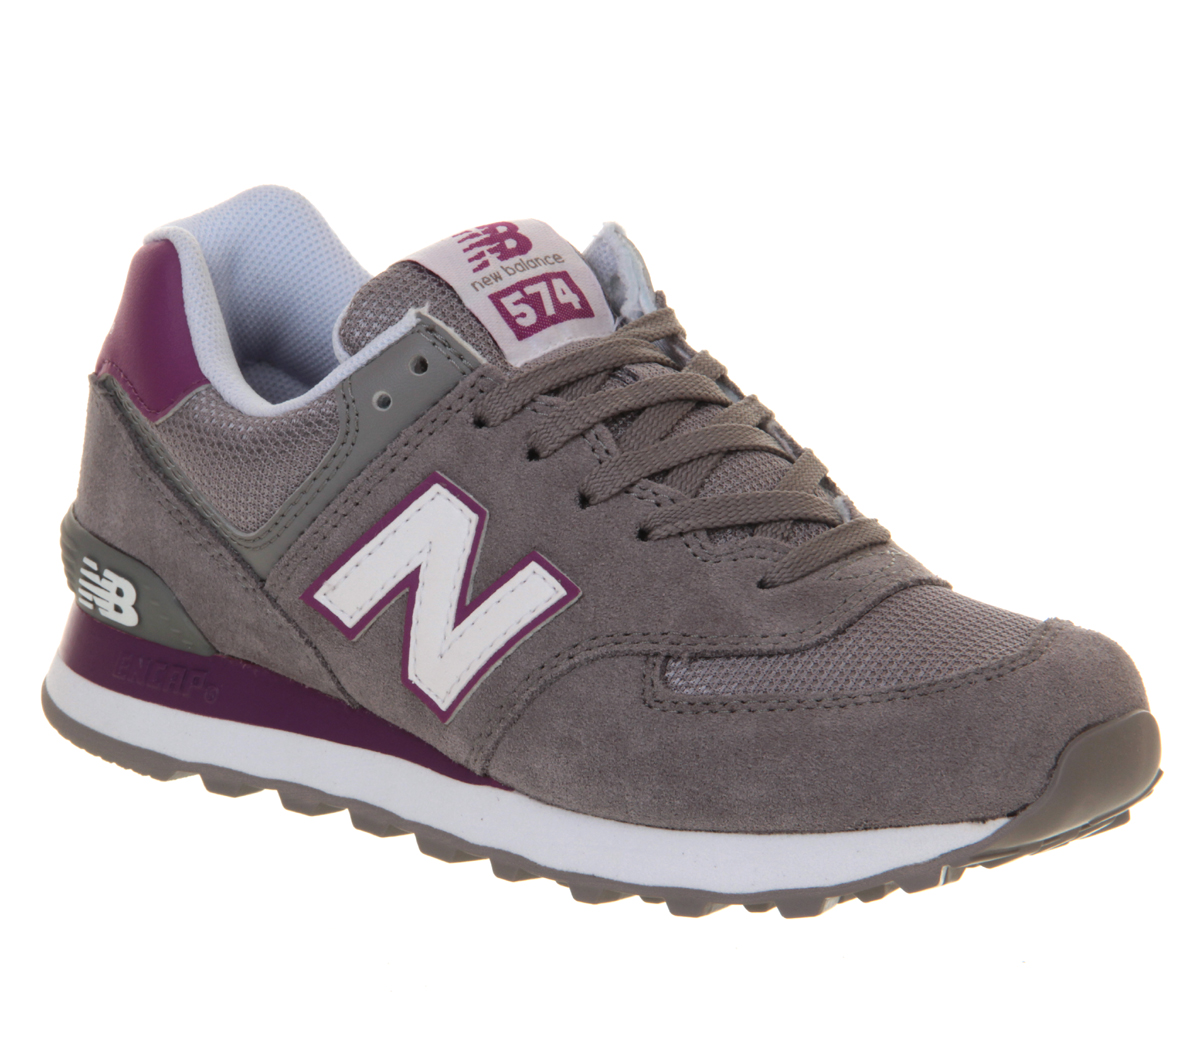 new balance wl574 grey purple trainers shoes ebay